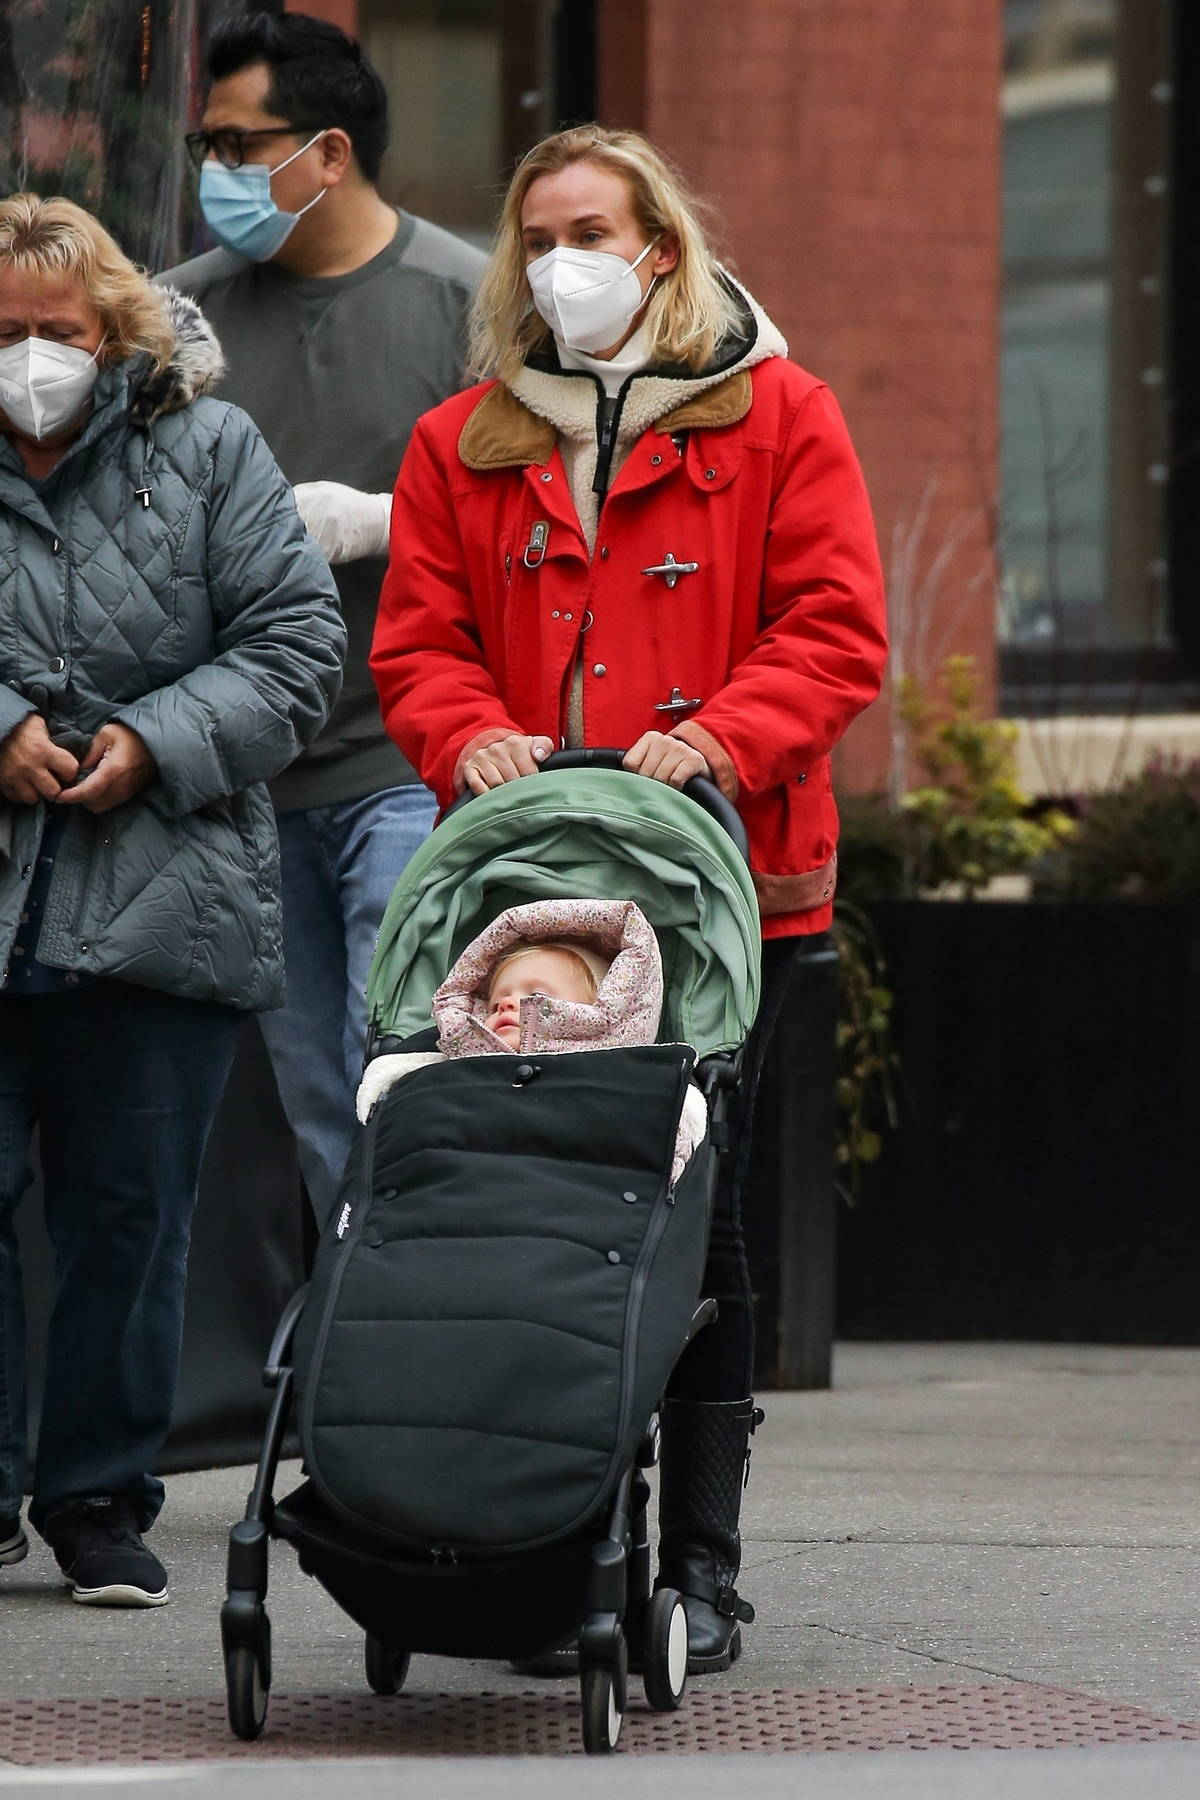 Diane Kruger bundles up in a red jacket and black leather boots for an outing with her mother and her daughter in New York City